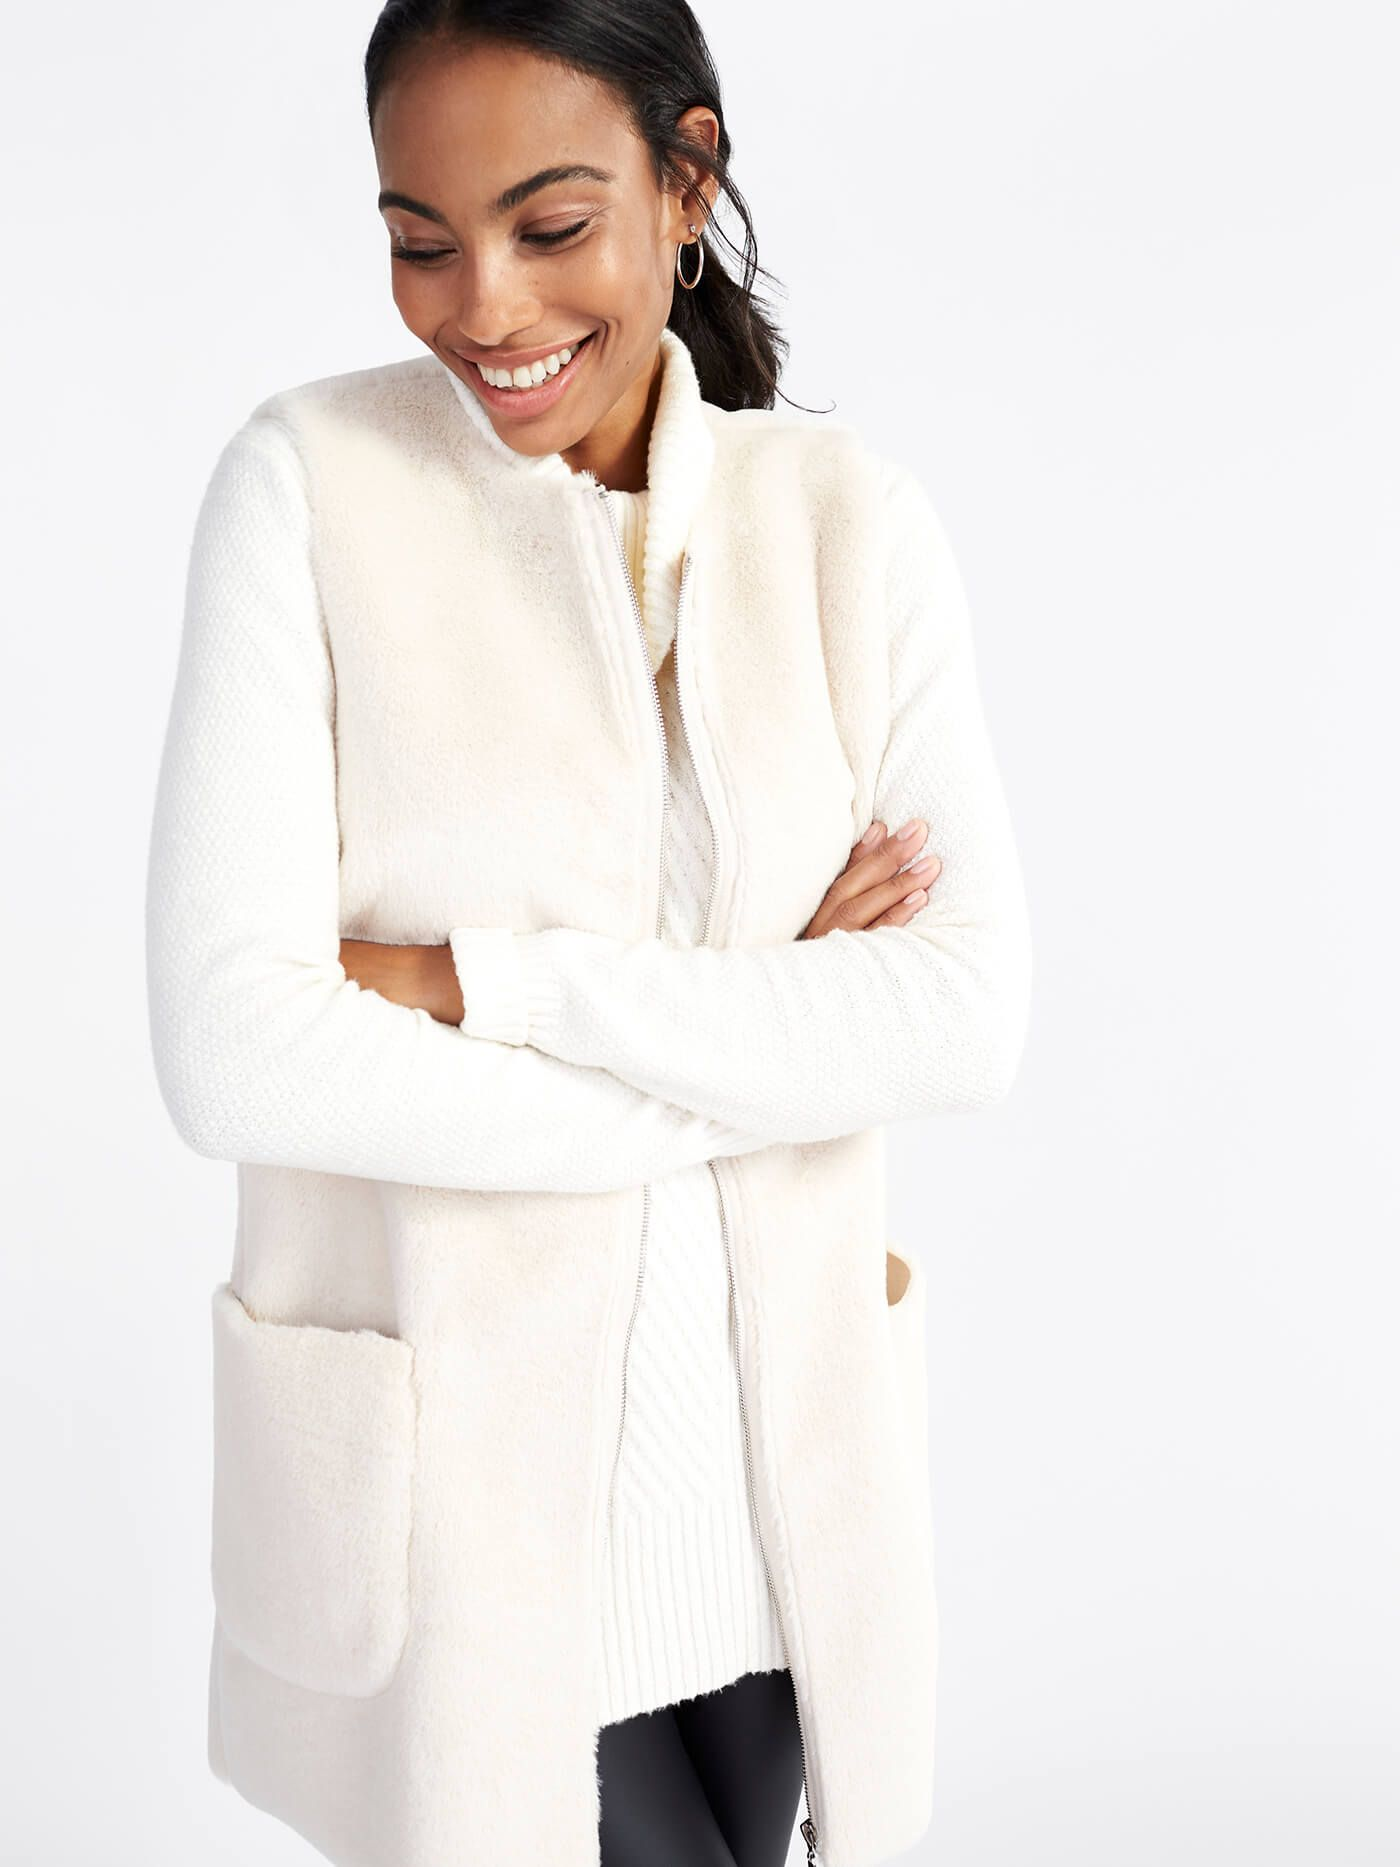 Stylish Inspiring stitched winter collection for women advise dress in on every day in 2019